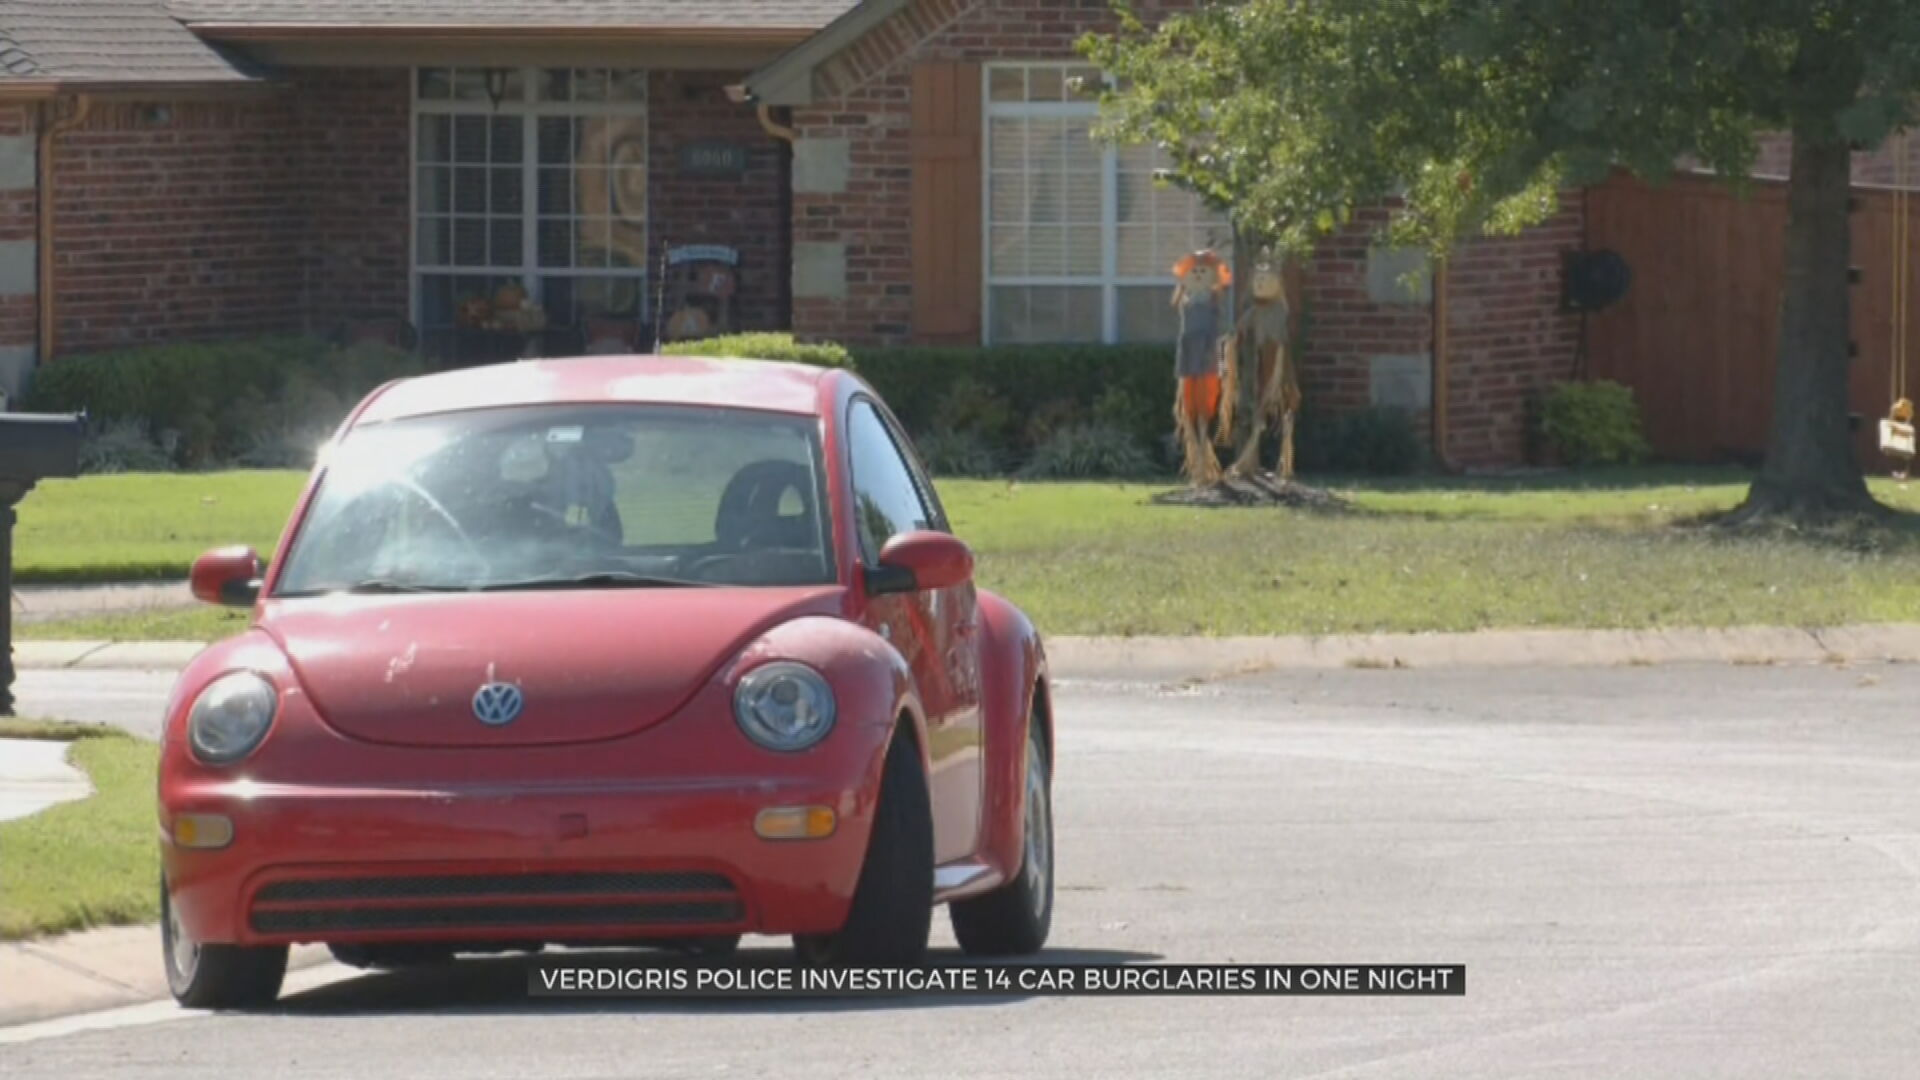 Verdigris Police Urge Vigilance After 14 Car Burglaries In One Night